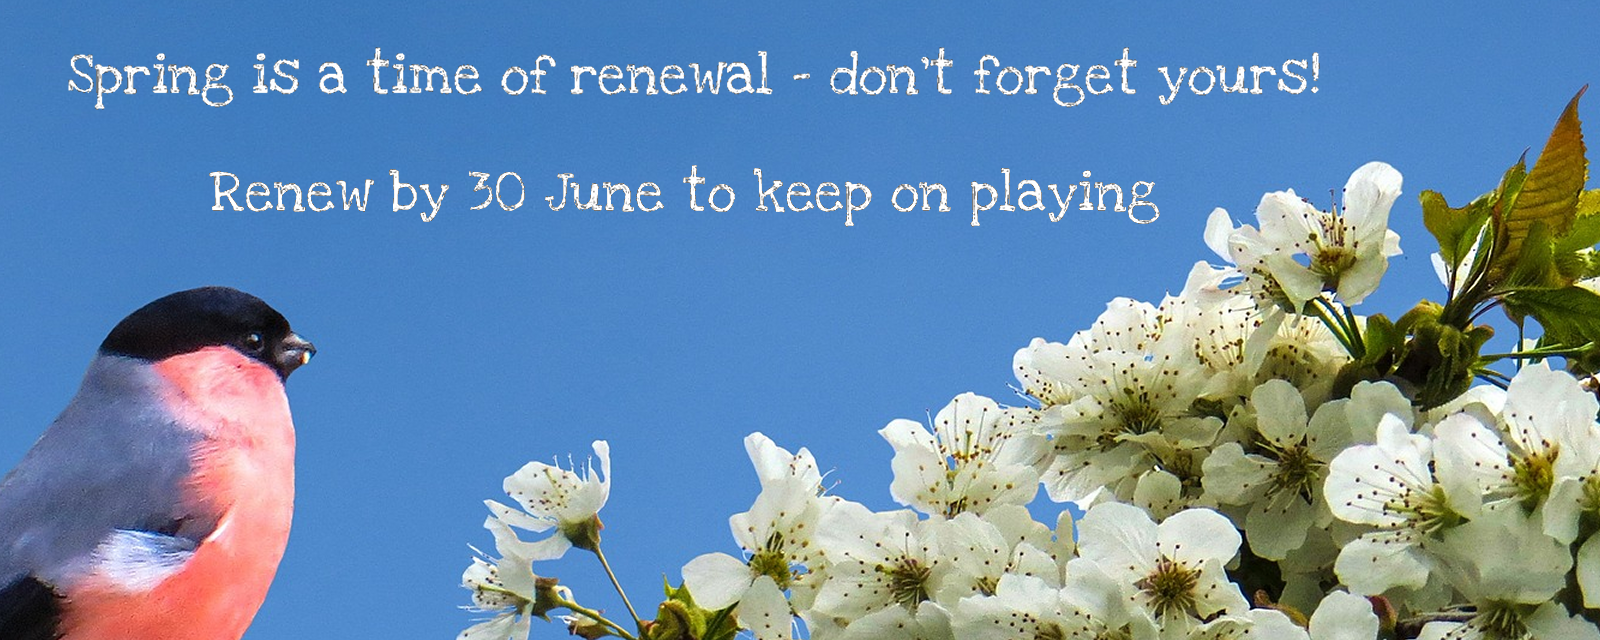 Reminder to renew membership by 30 June